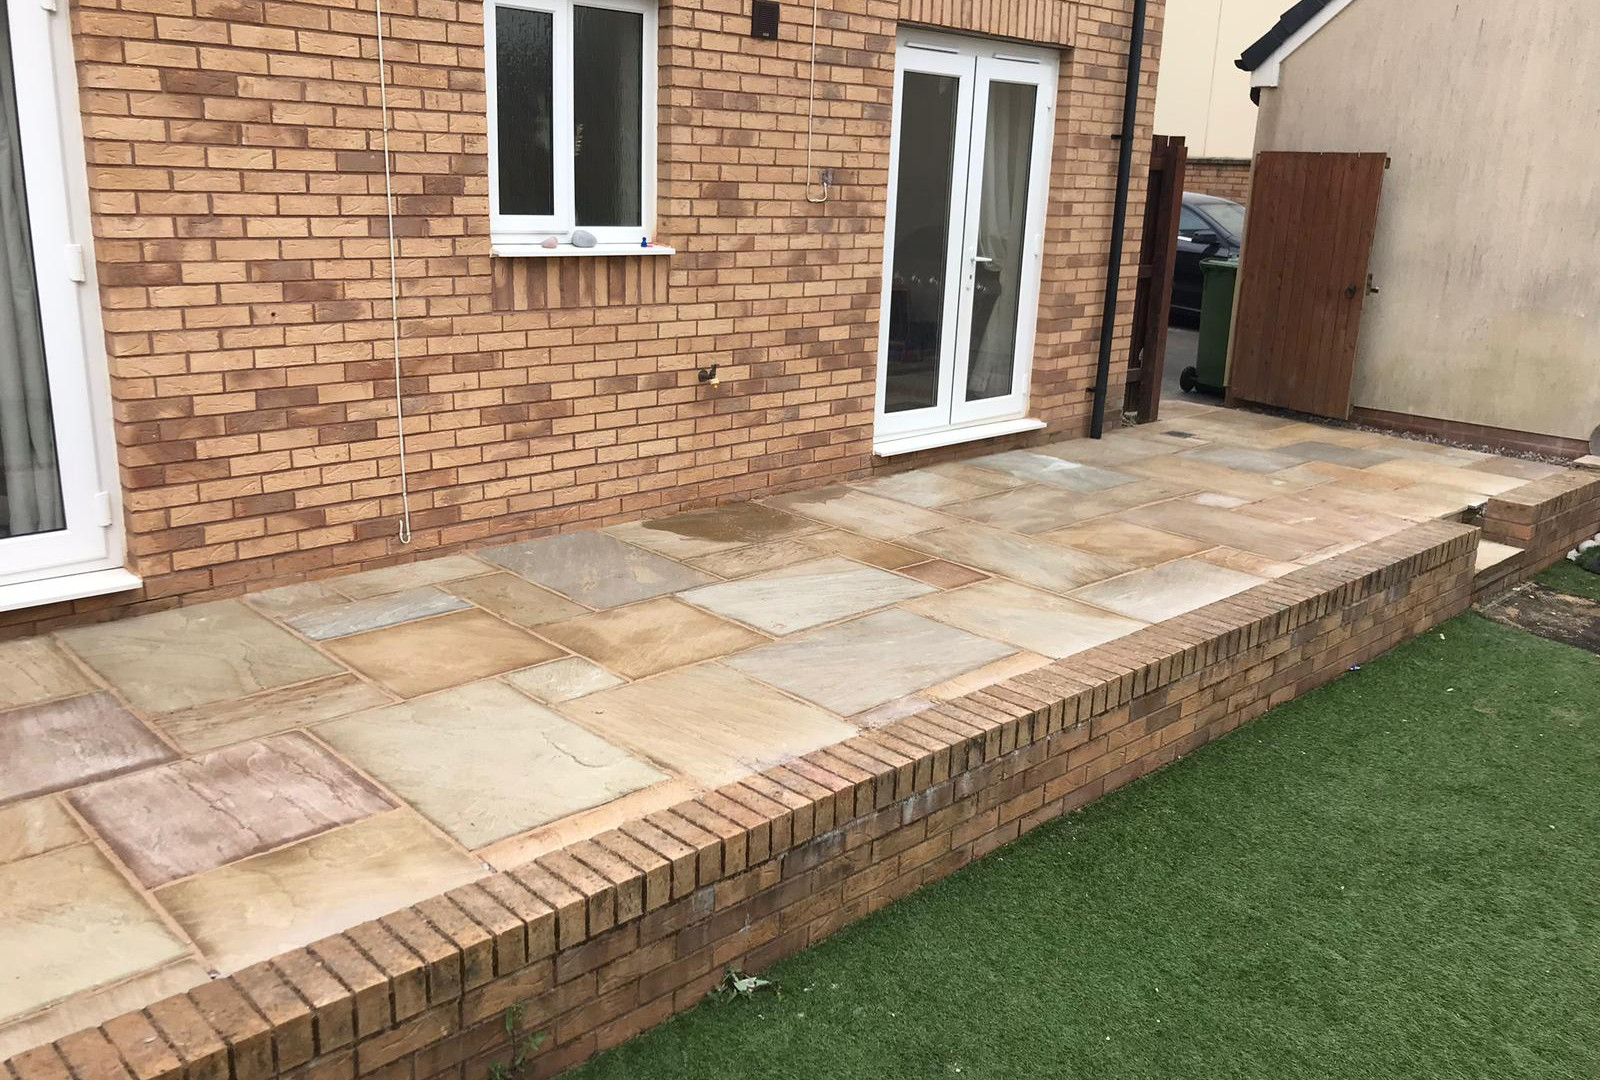 PATIO WITH EDGING BRICK AND STEPS